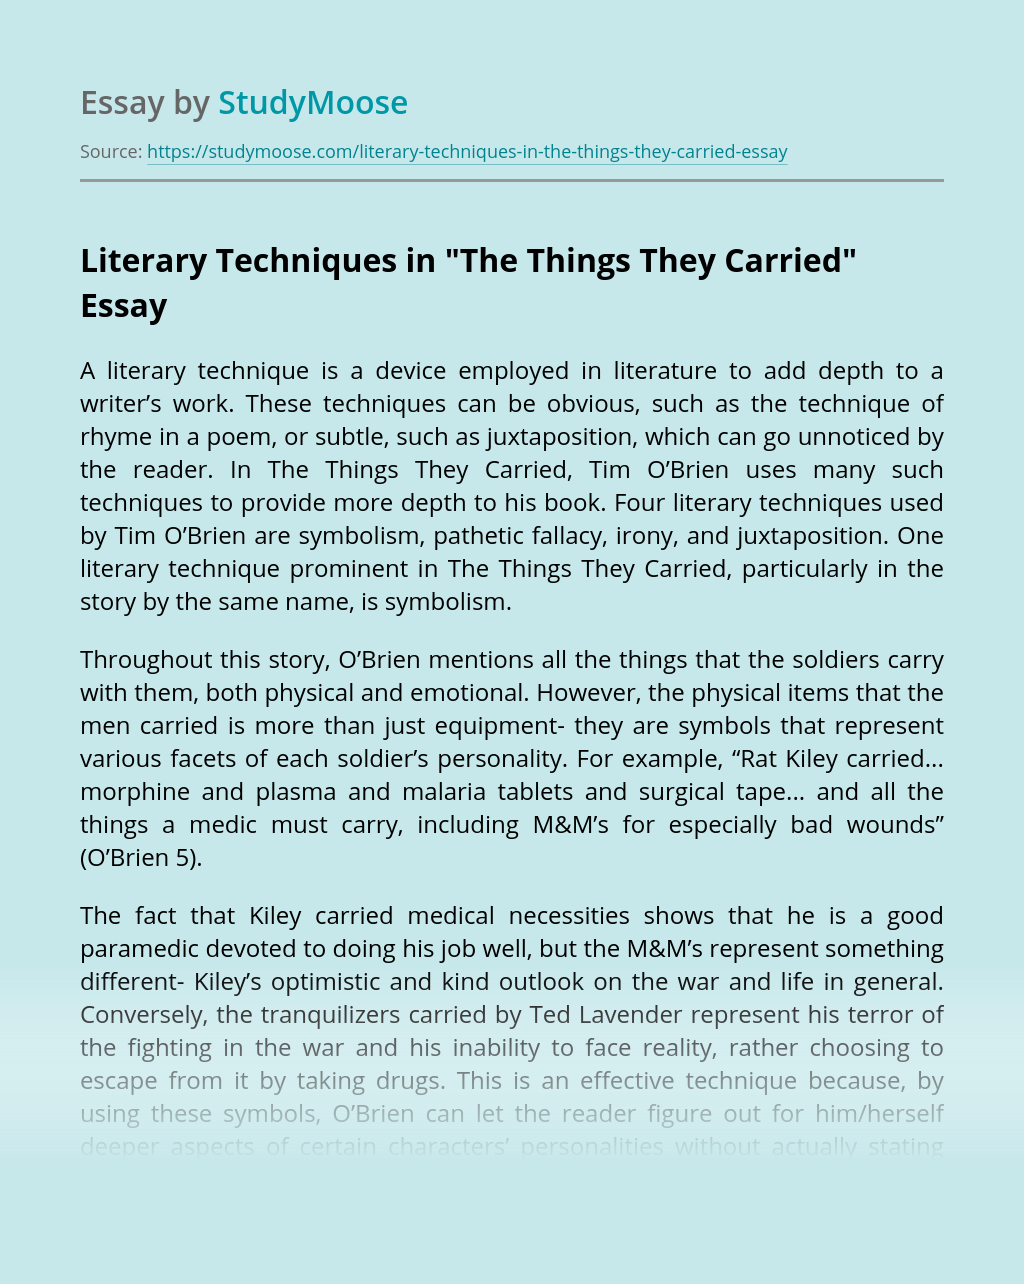 Literary Techniques in